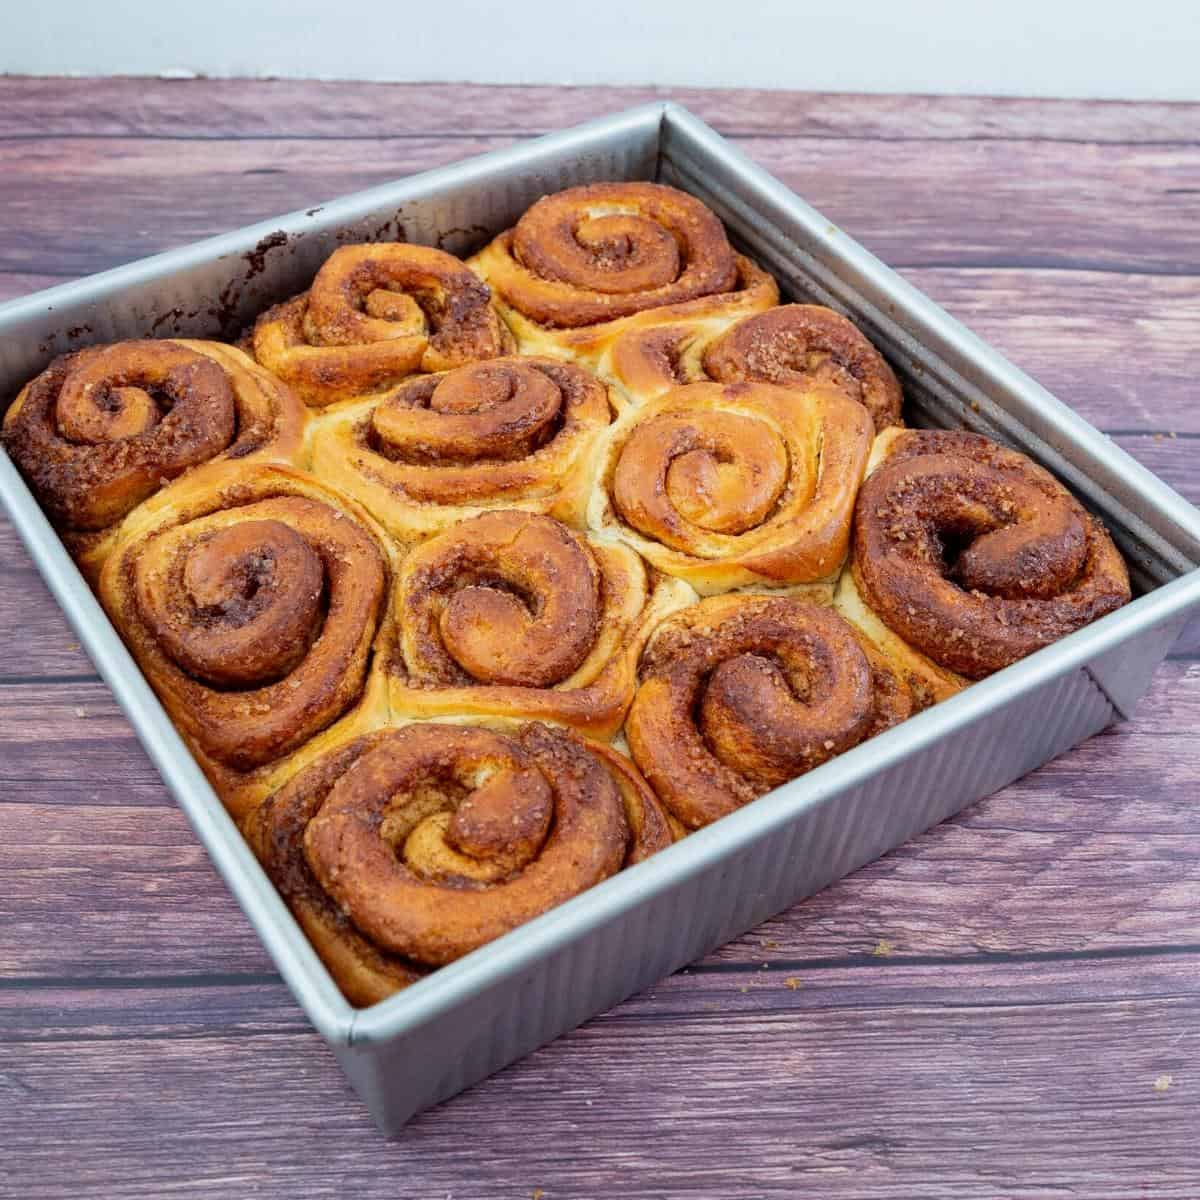 A baking tray with baked cinnamon rolls.